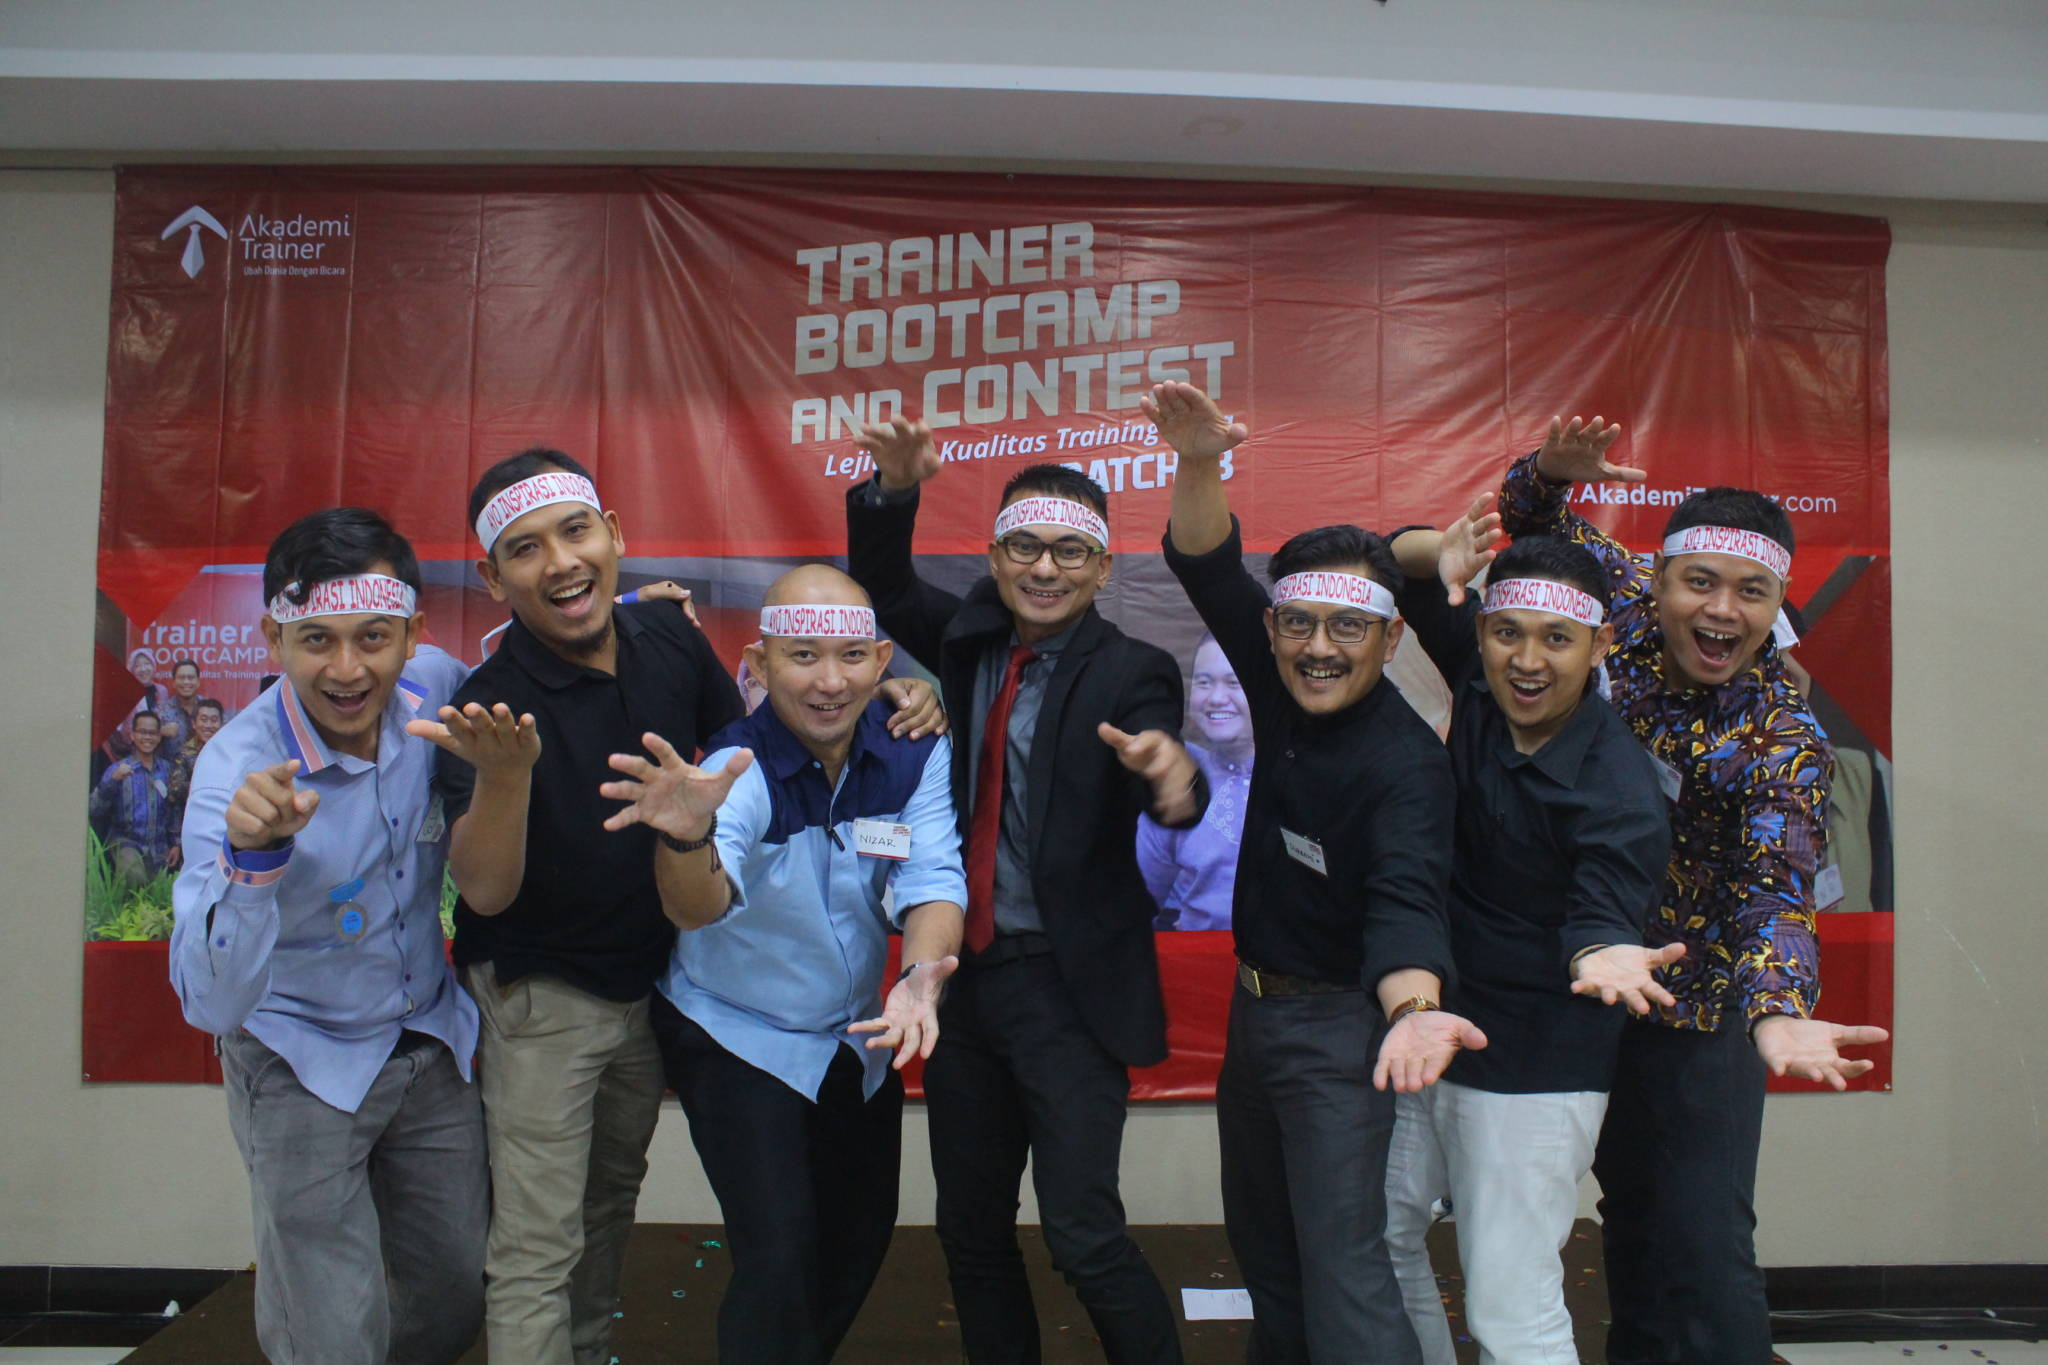 Memproduksi Even Training yang Repeat Order - Corporate Training Indonesia